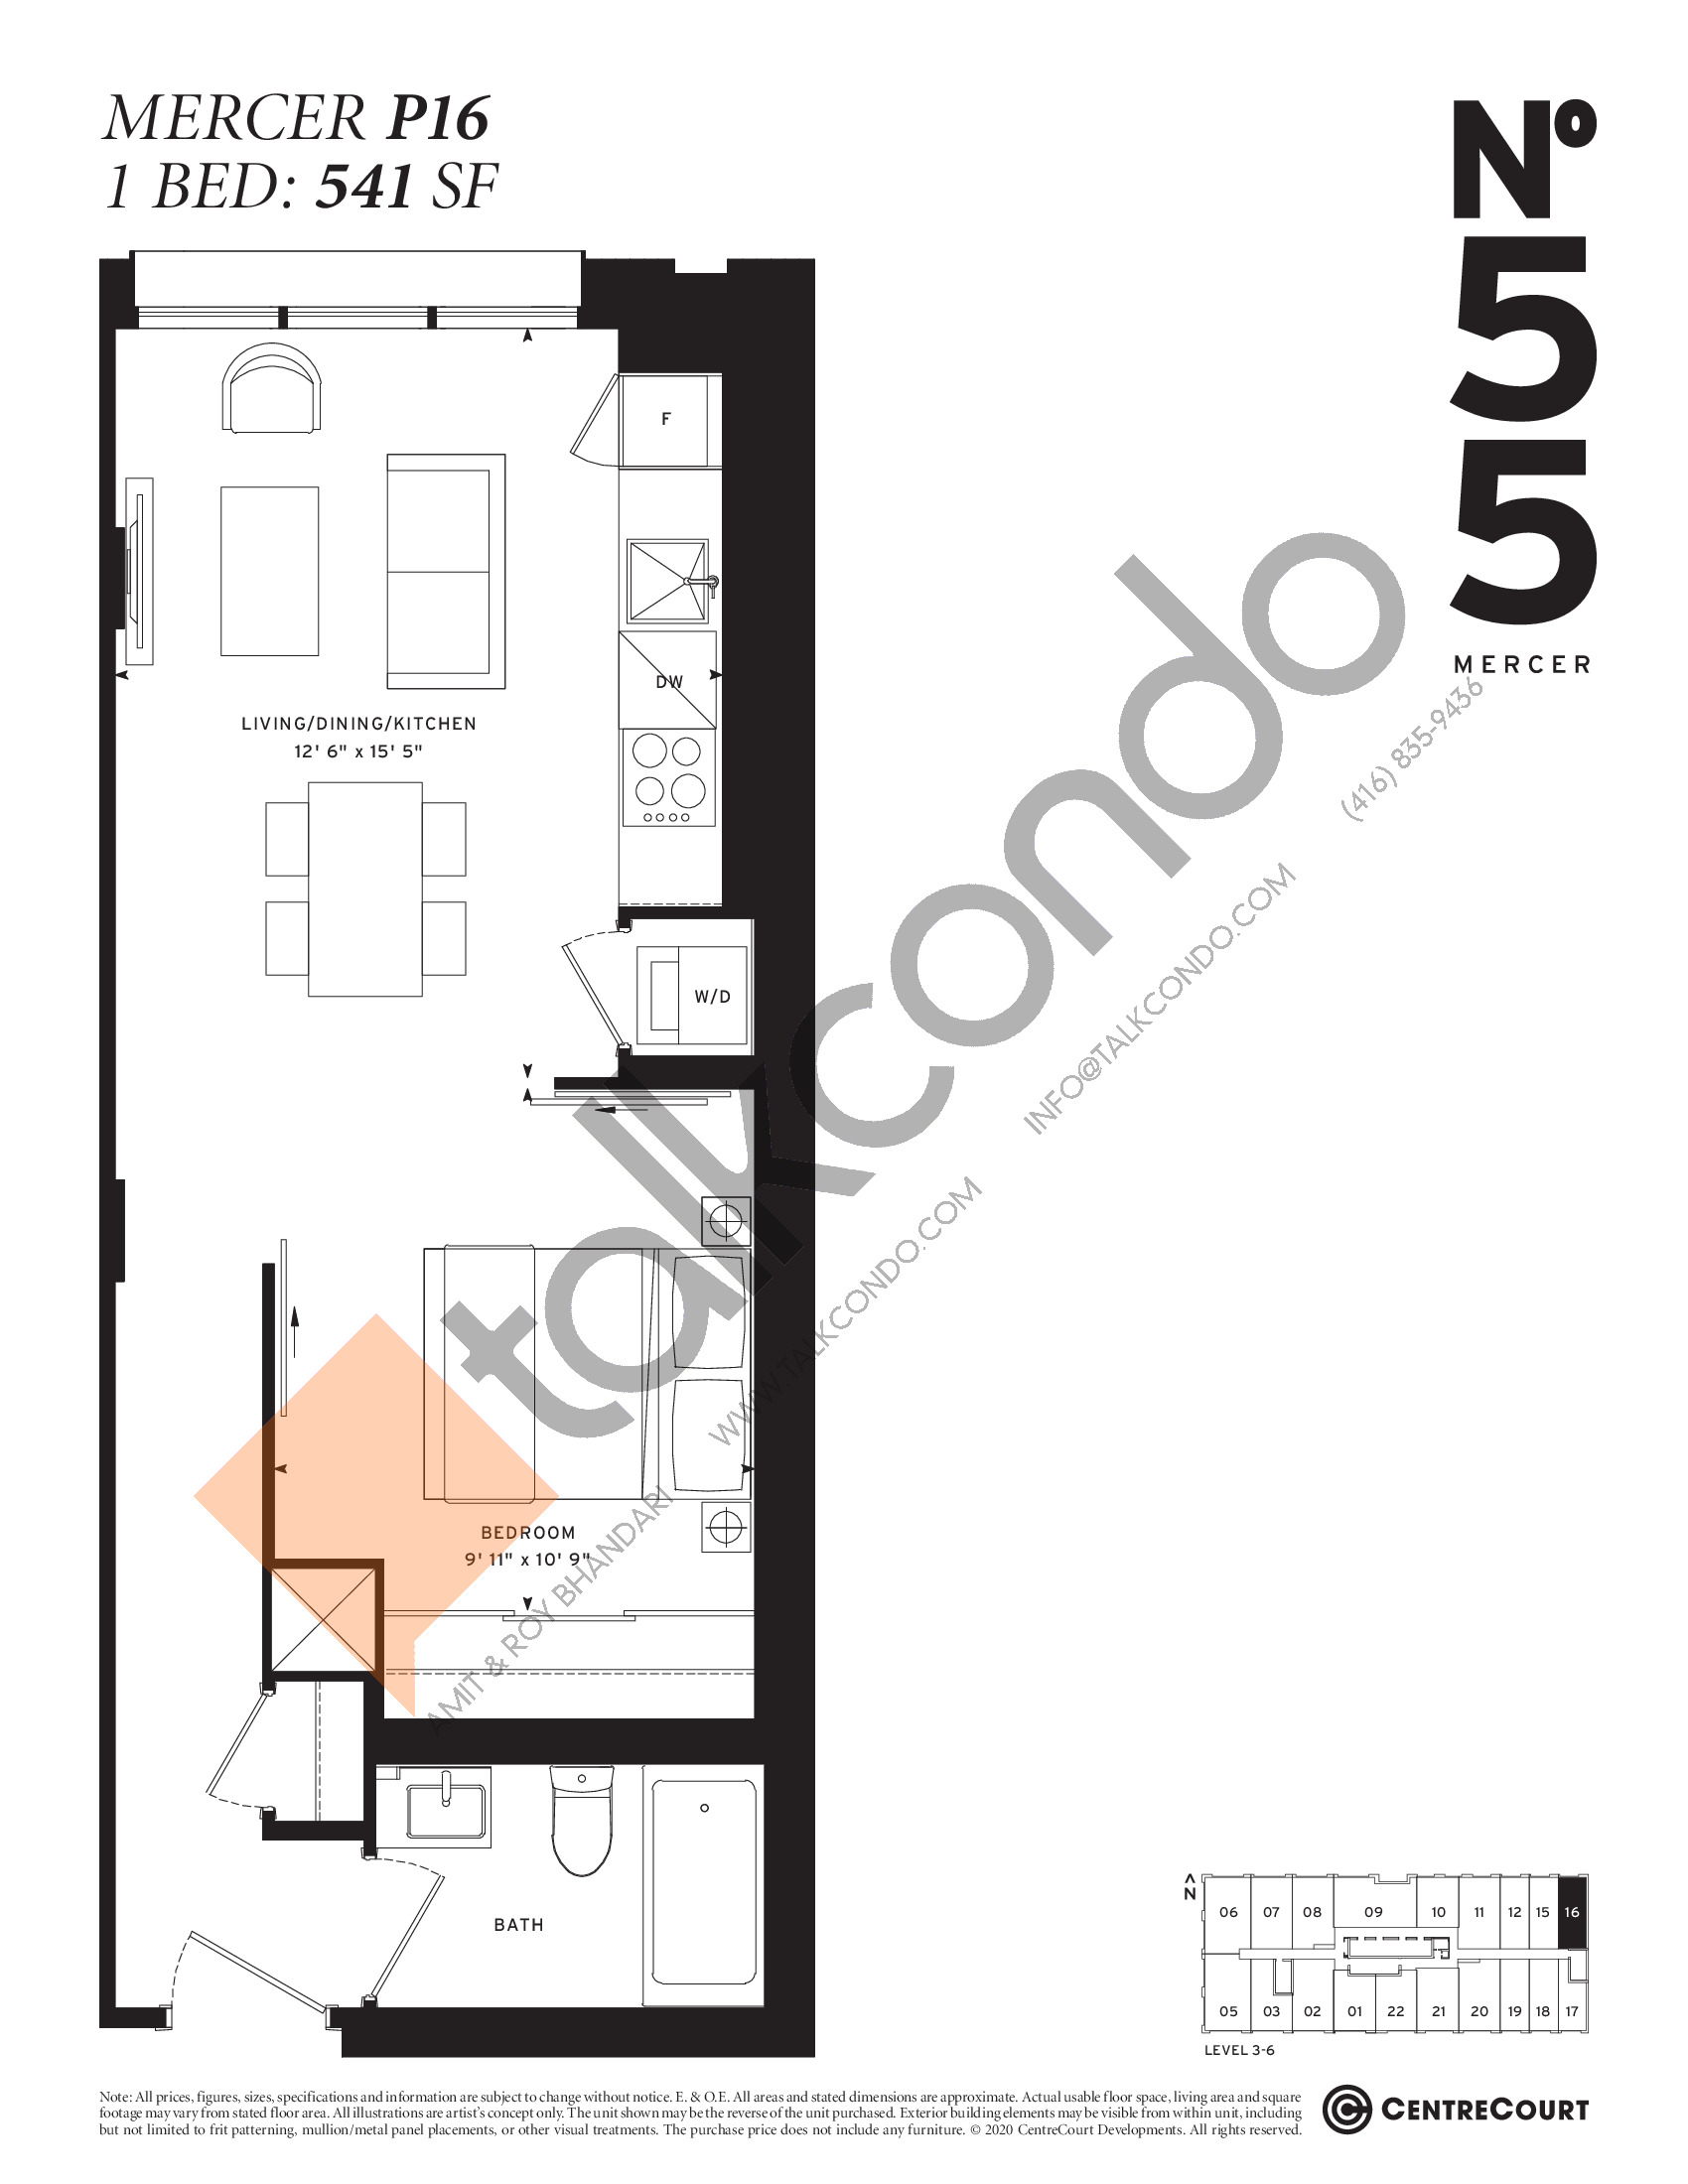 Mercer P16 Floor Plan at No. 55 Mercer Condos - 541 sq.ft